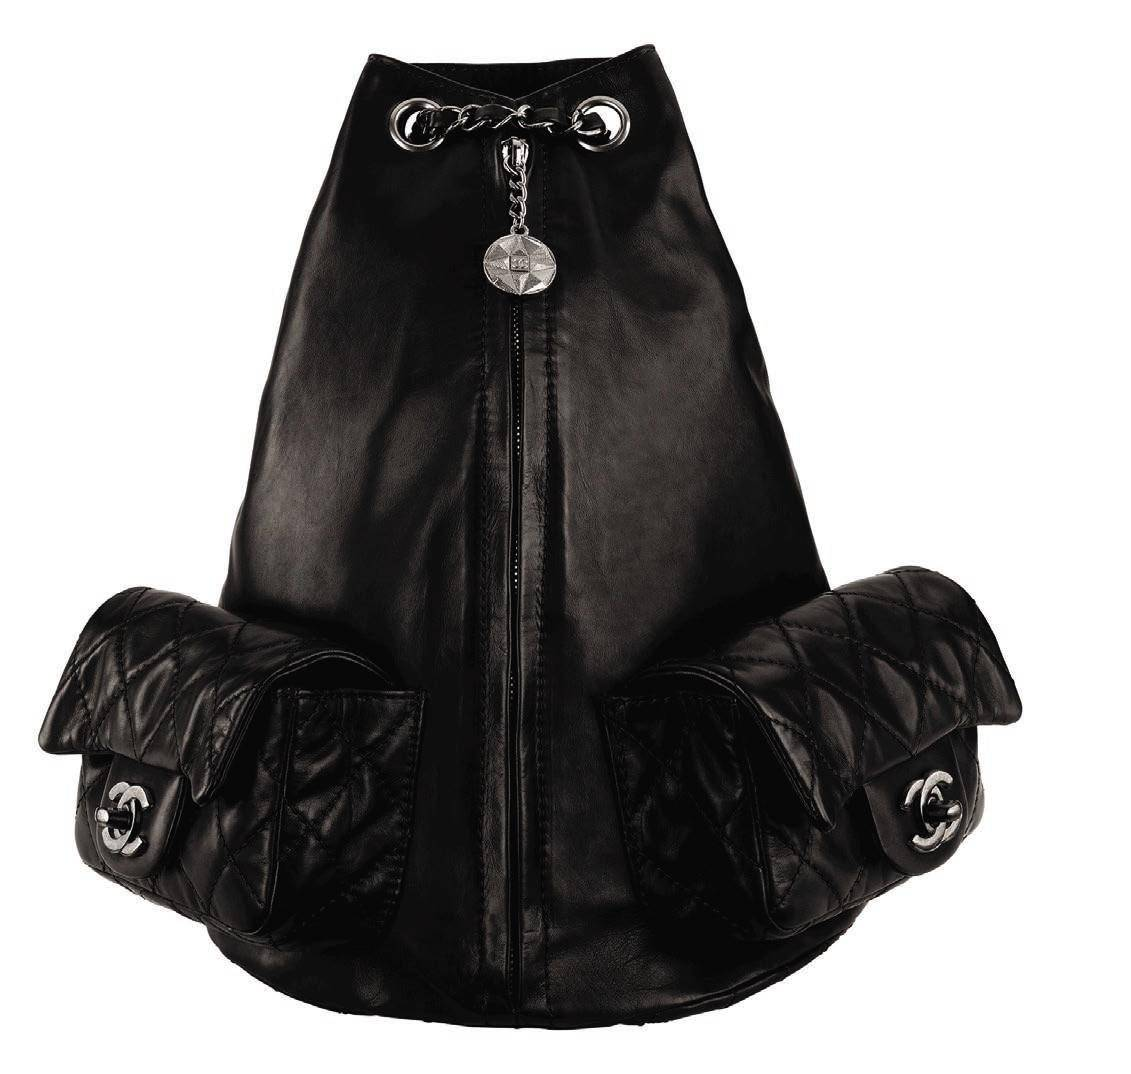 Large calf skin backpack, $3,300; available at Chanel boutiques, 125 N Robertson Blvd., Los Angeles, 310-278-5505; and 156 Geary St., San Francisco, 415-981-1550